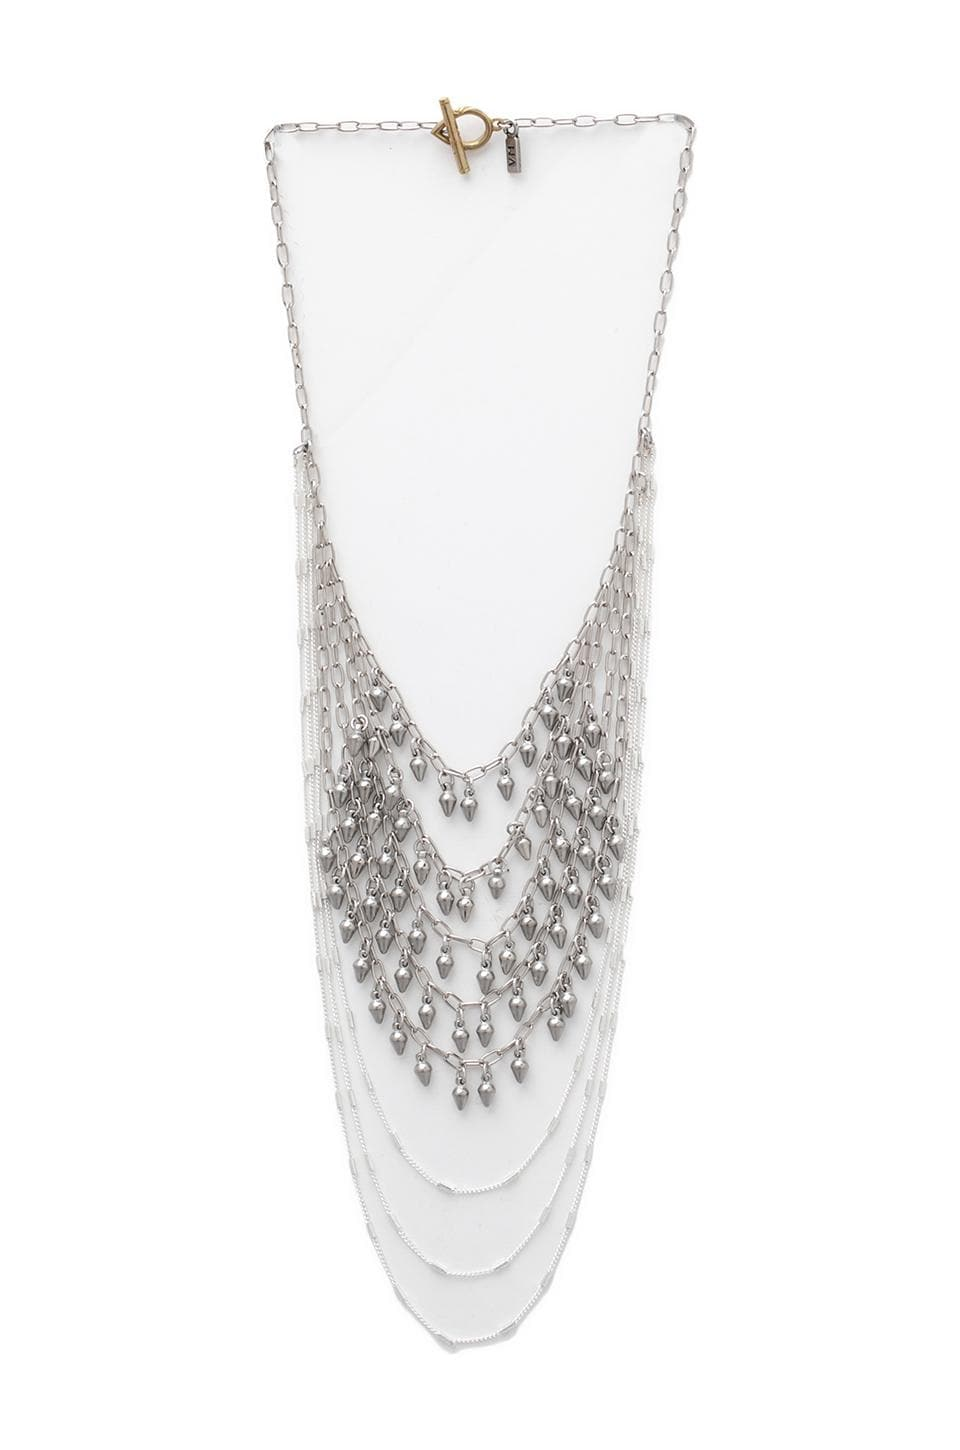 Vanessa Mooney Rock Your Gypsy Soul Necklace in Silver